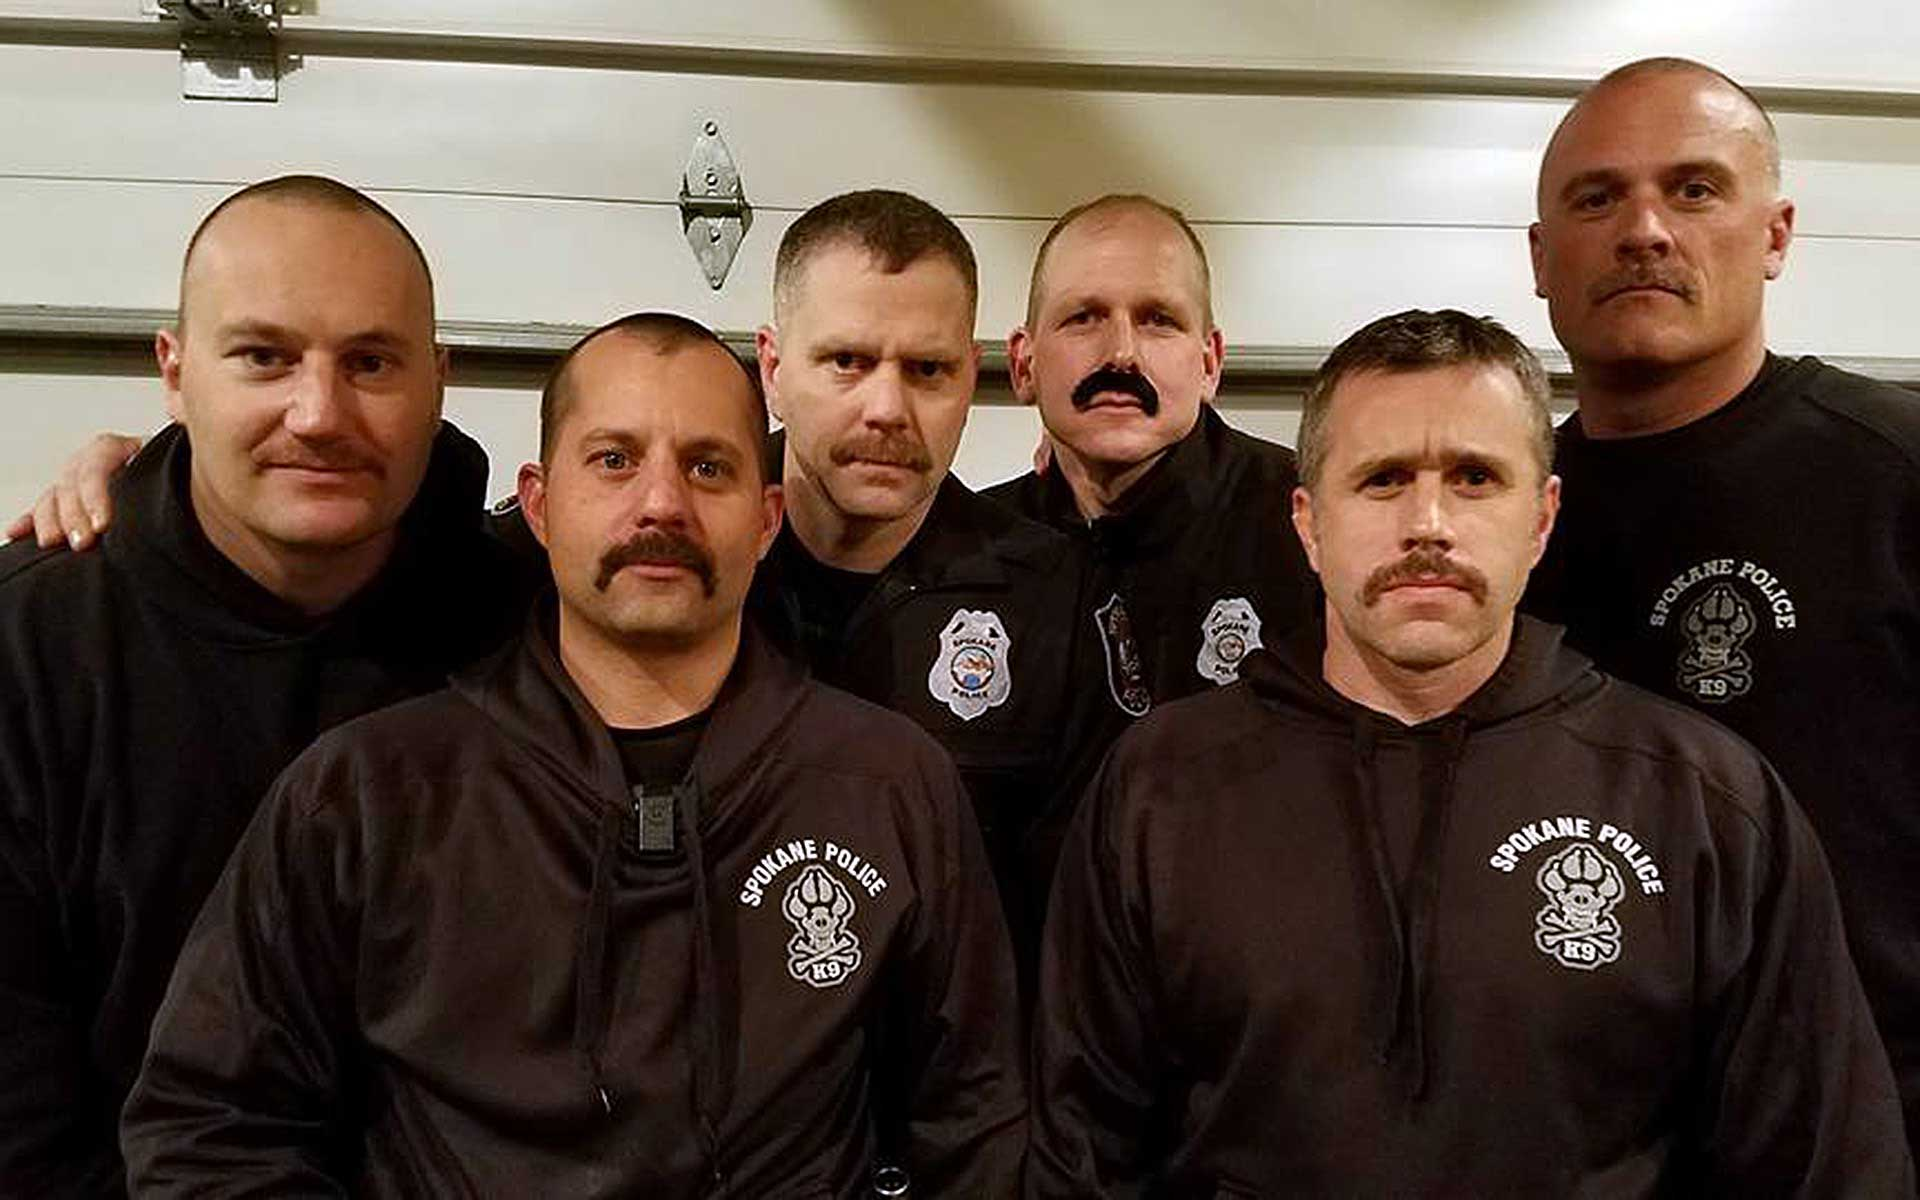 The Fuzz: Spokane Police Officers Not Shaving for a Good Cause